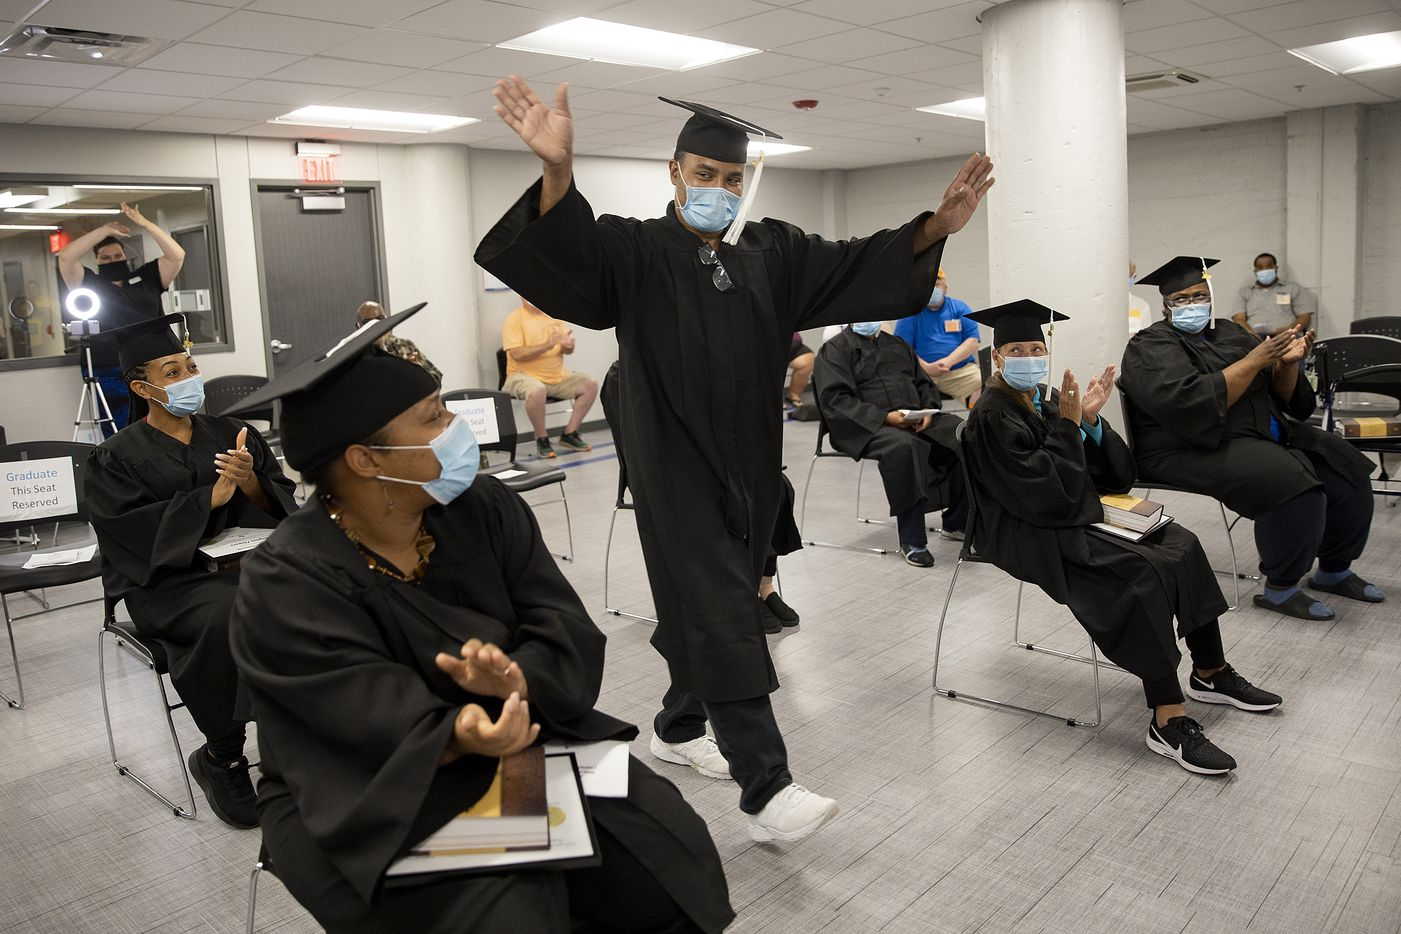 Daniel Wilson walks up to receive his certificate during the graduation ceremony for the September 2020 class of Dallas LIFE on Sept. 3, 2020 in Dallas. The graduates completed a 10-month program to help them overcome homelessness.